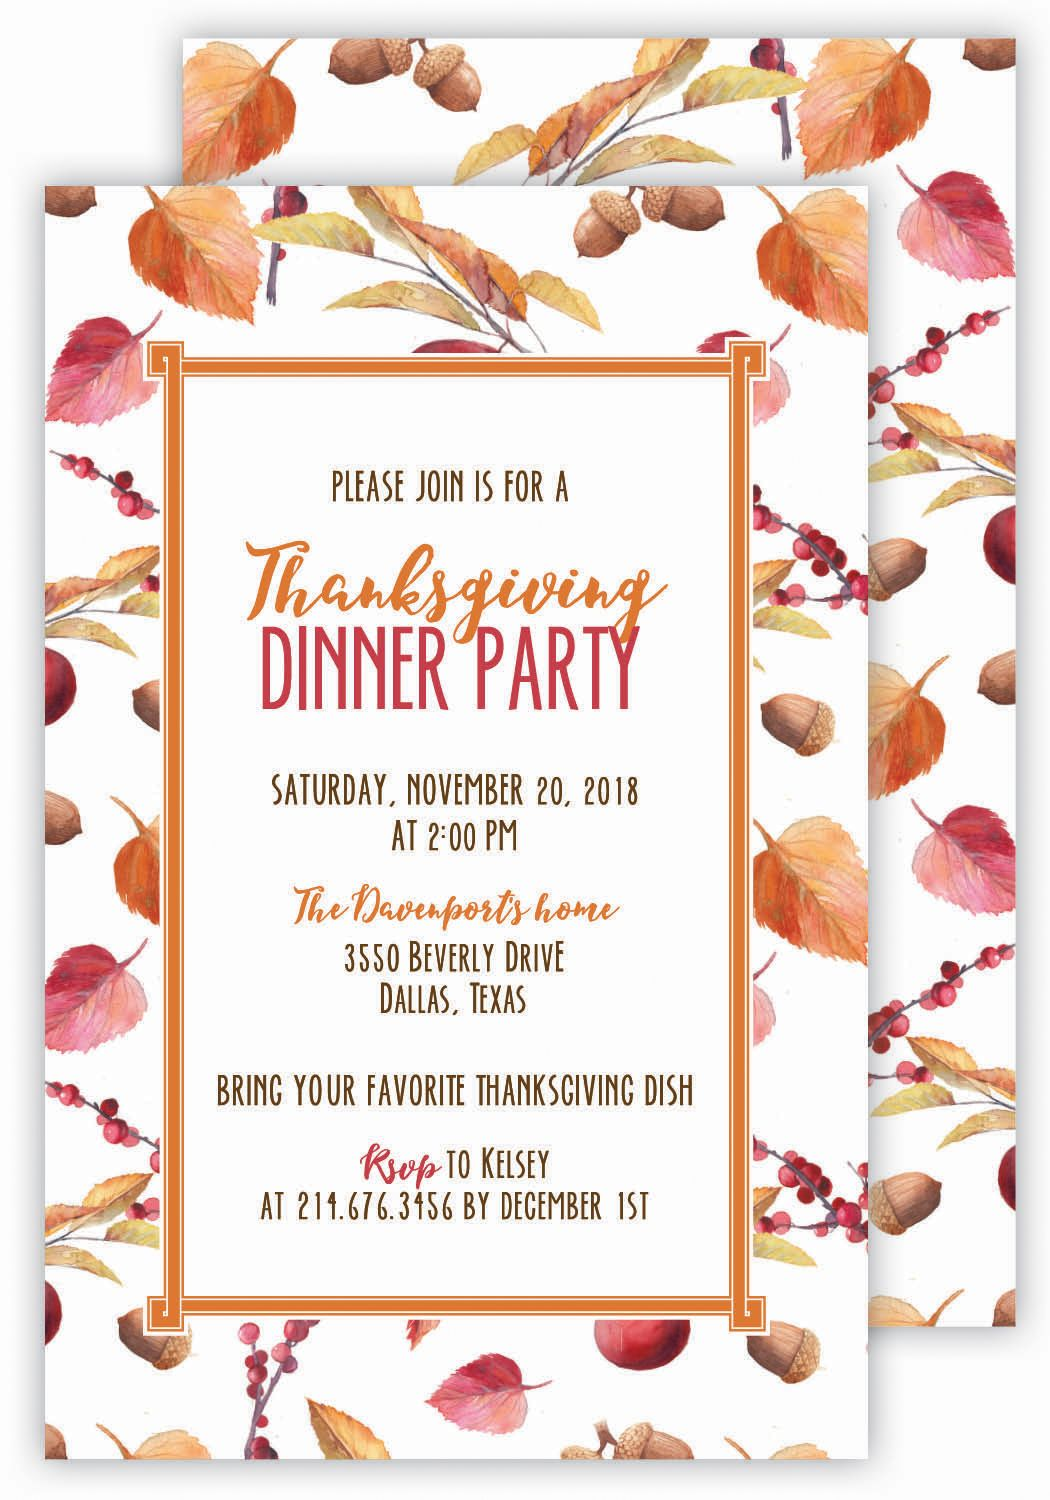 Thanksgiving Dinner Party Invitation Dinner party invitations